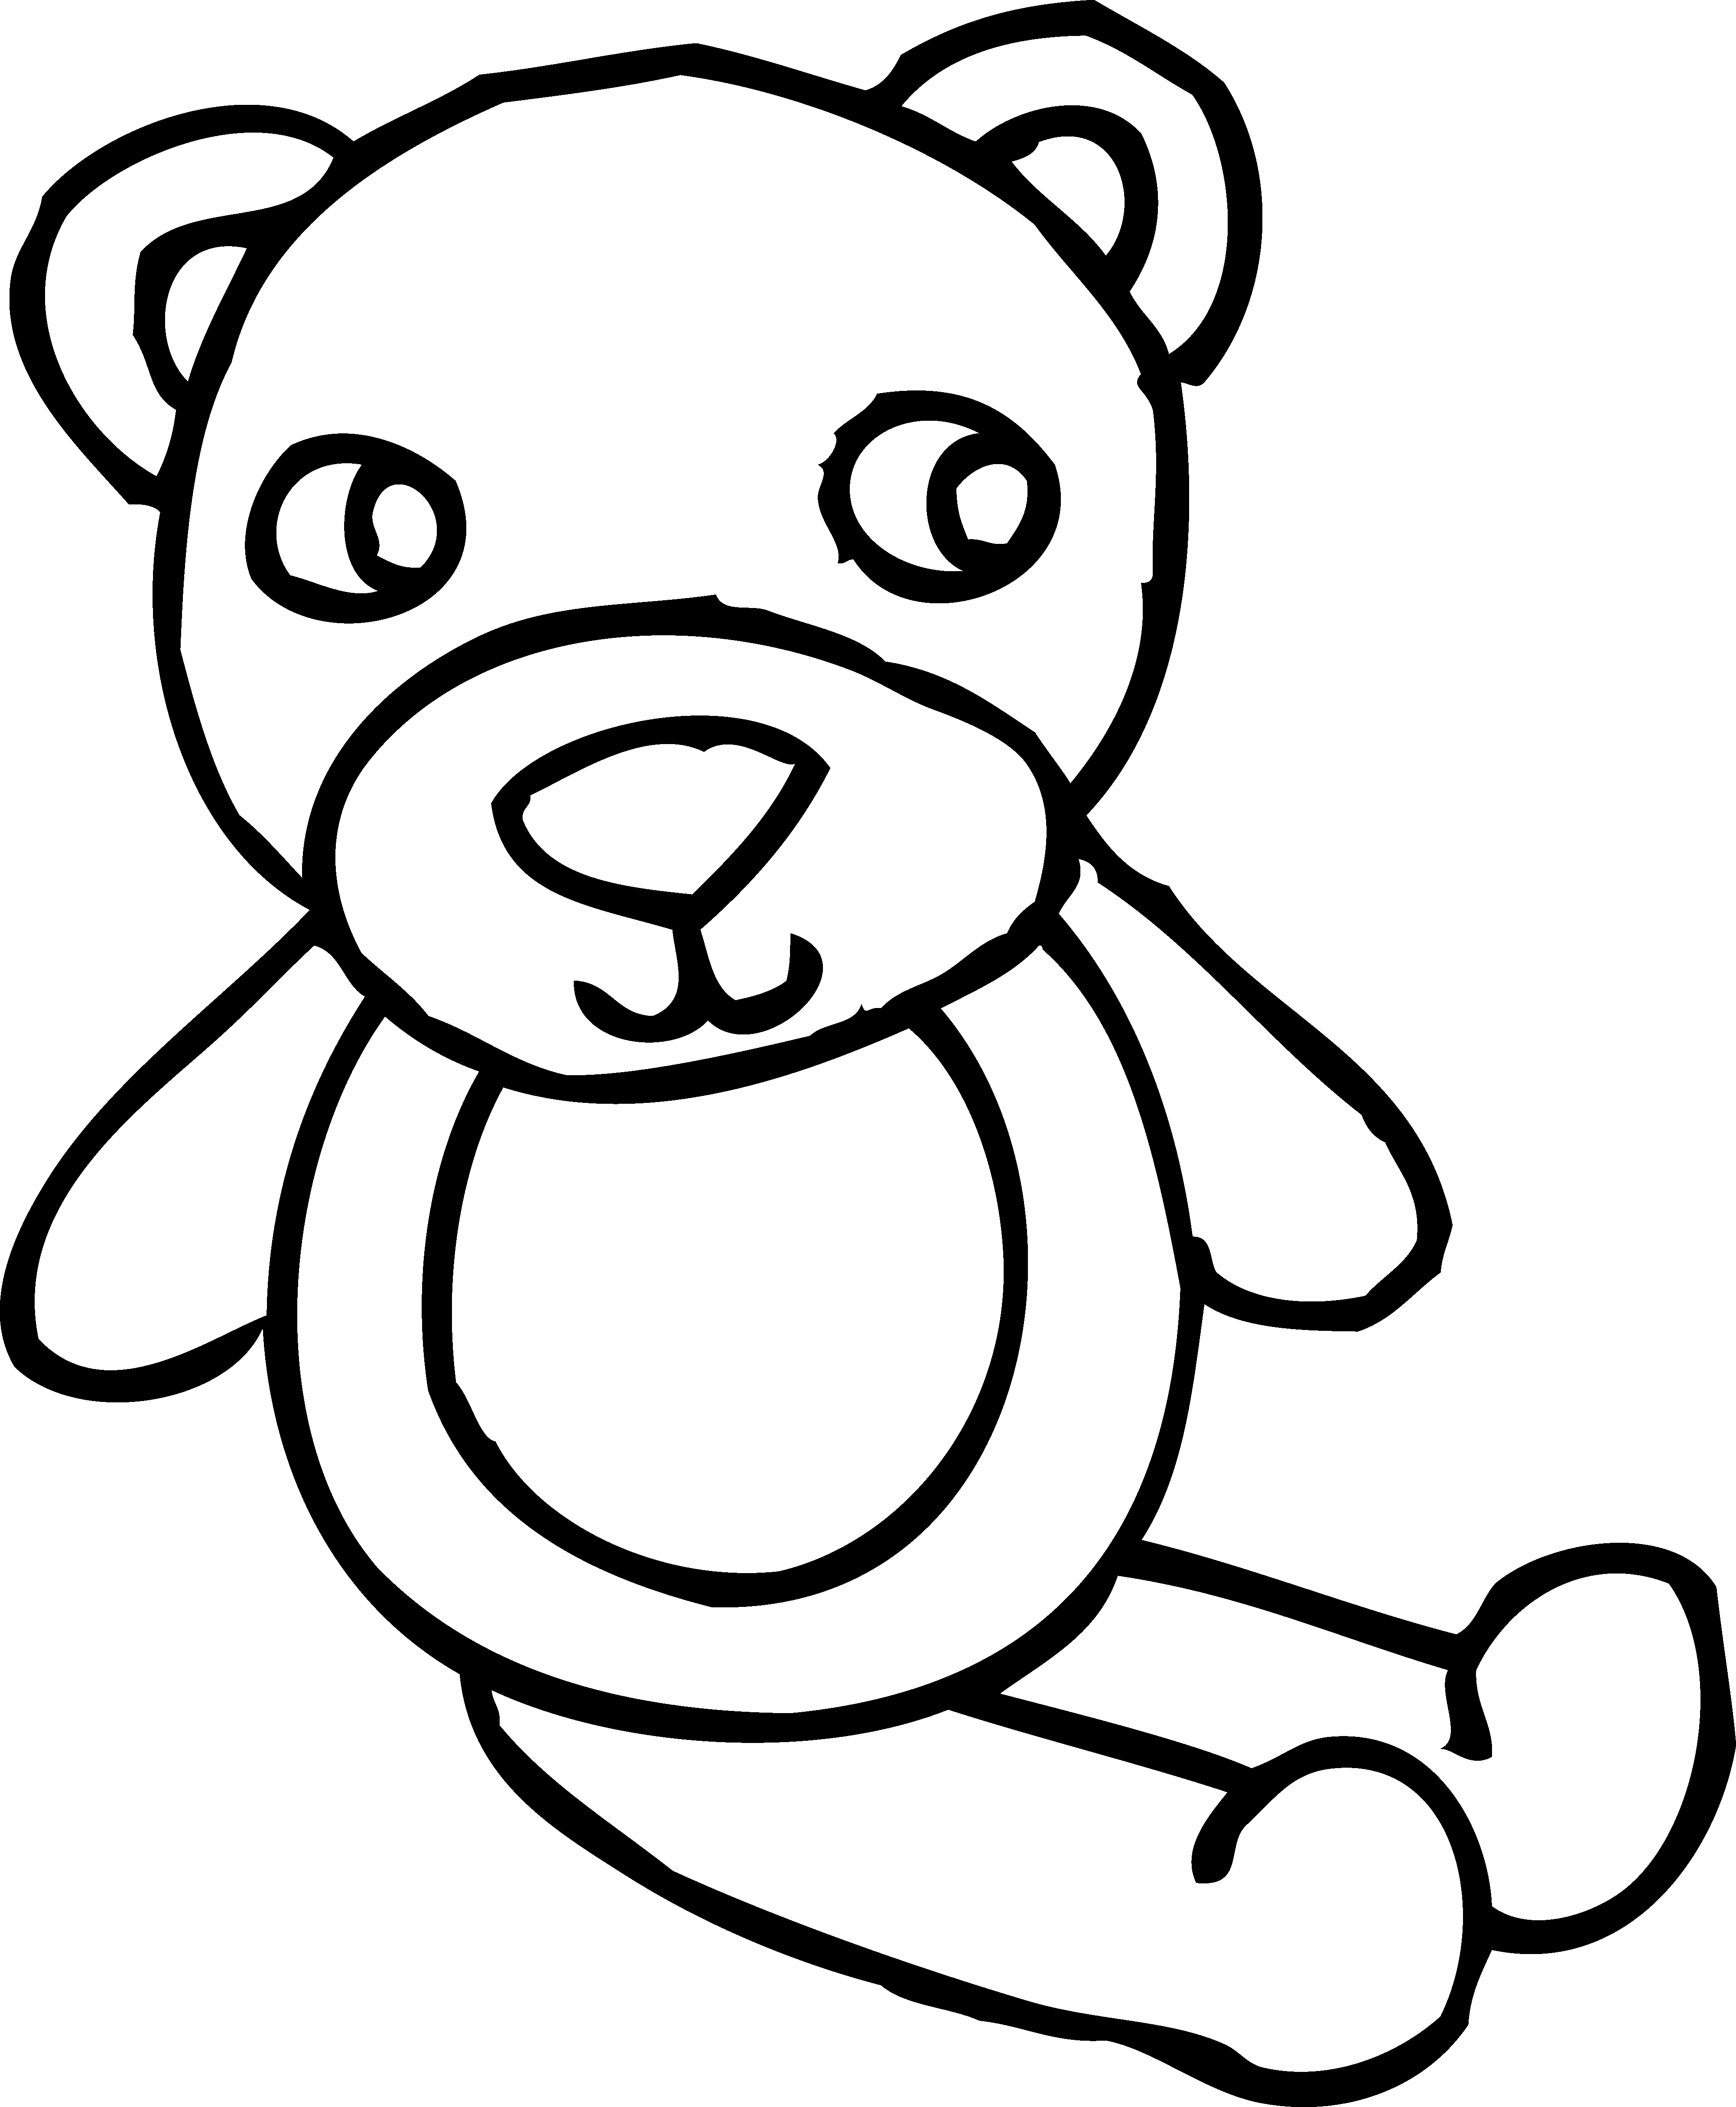 picture Teddy bear toy coloring. Stuffed animal clipart black and white